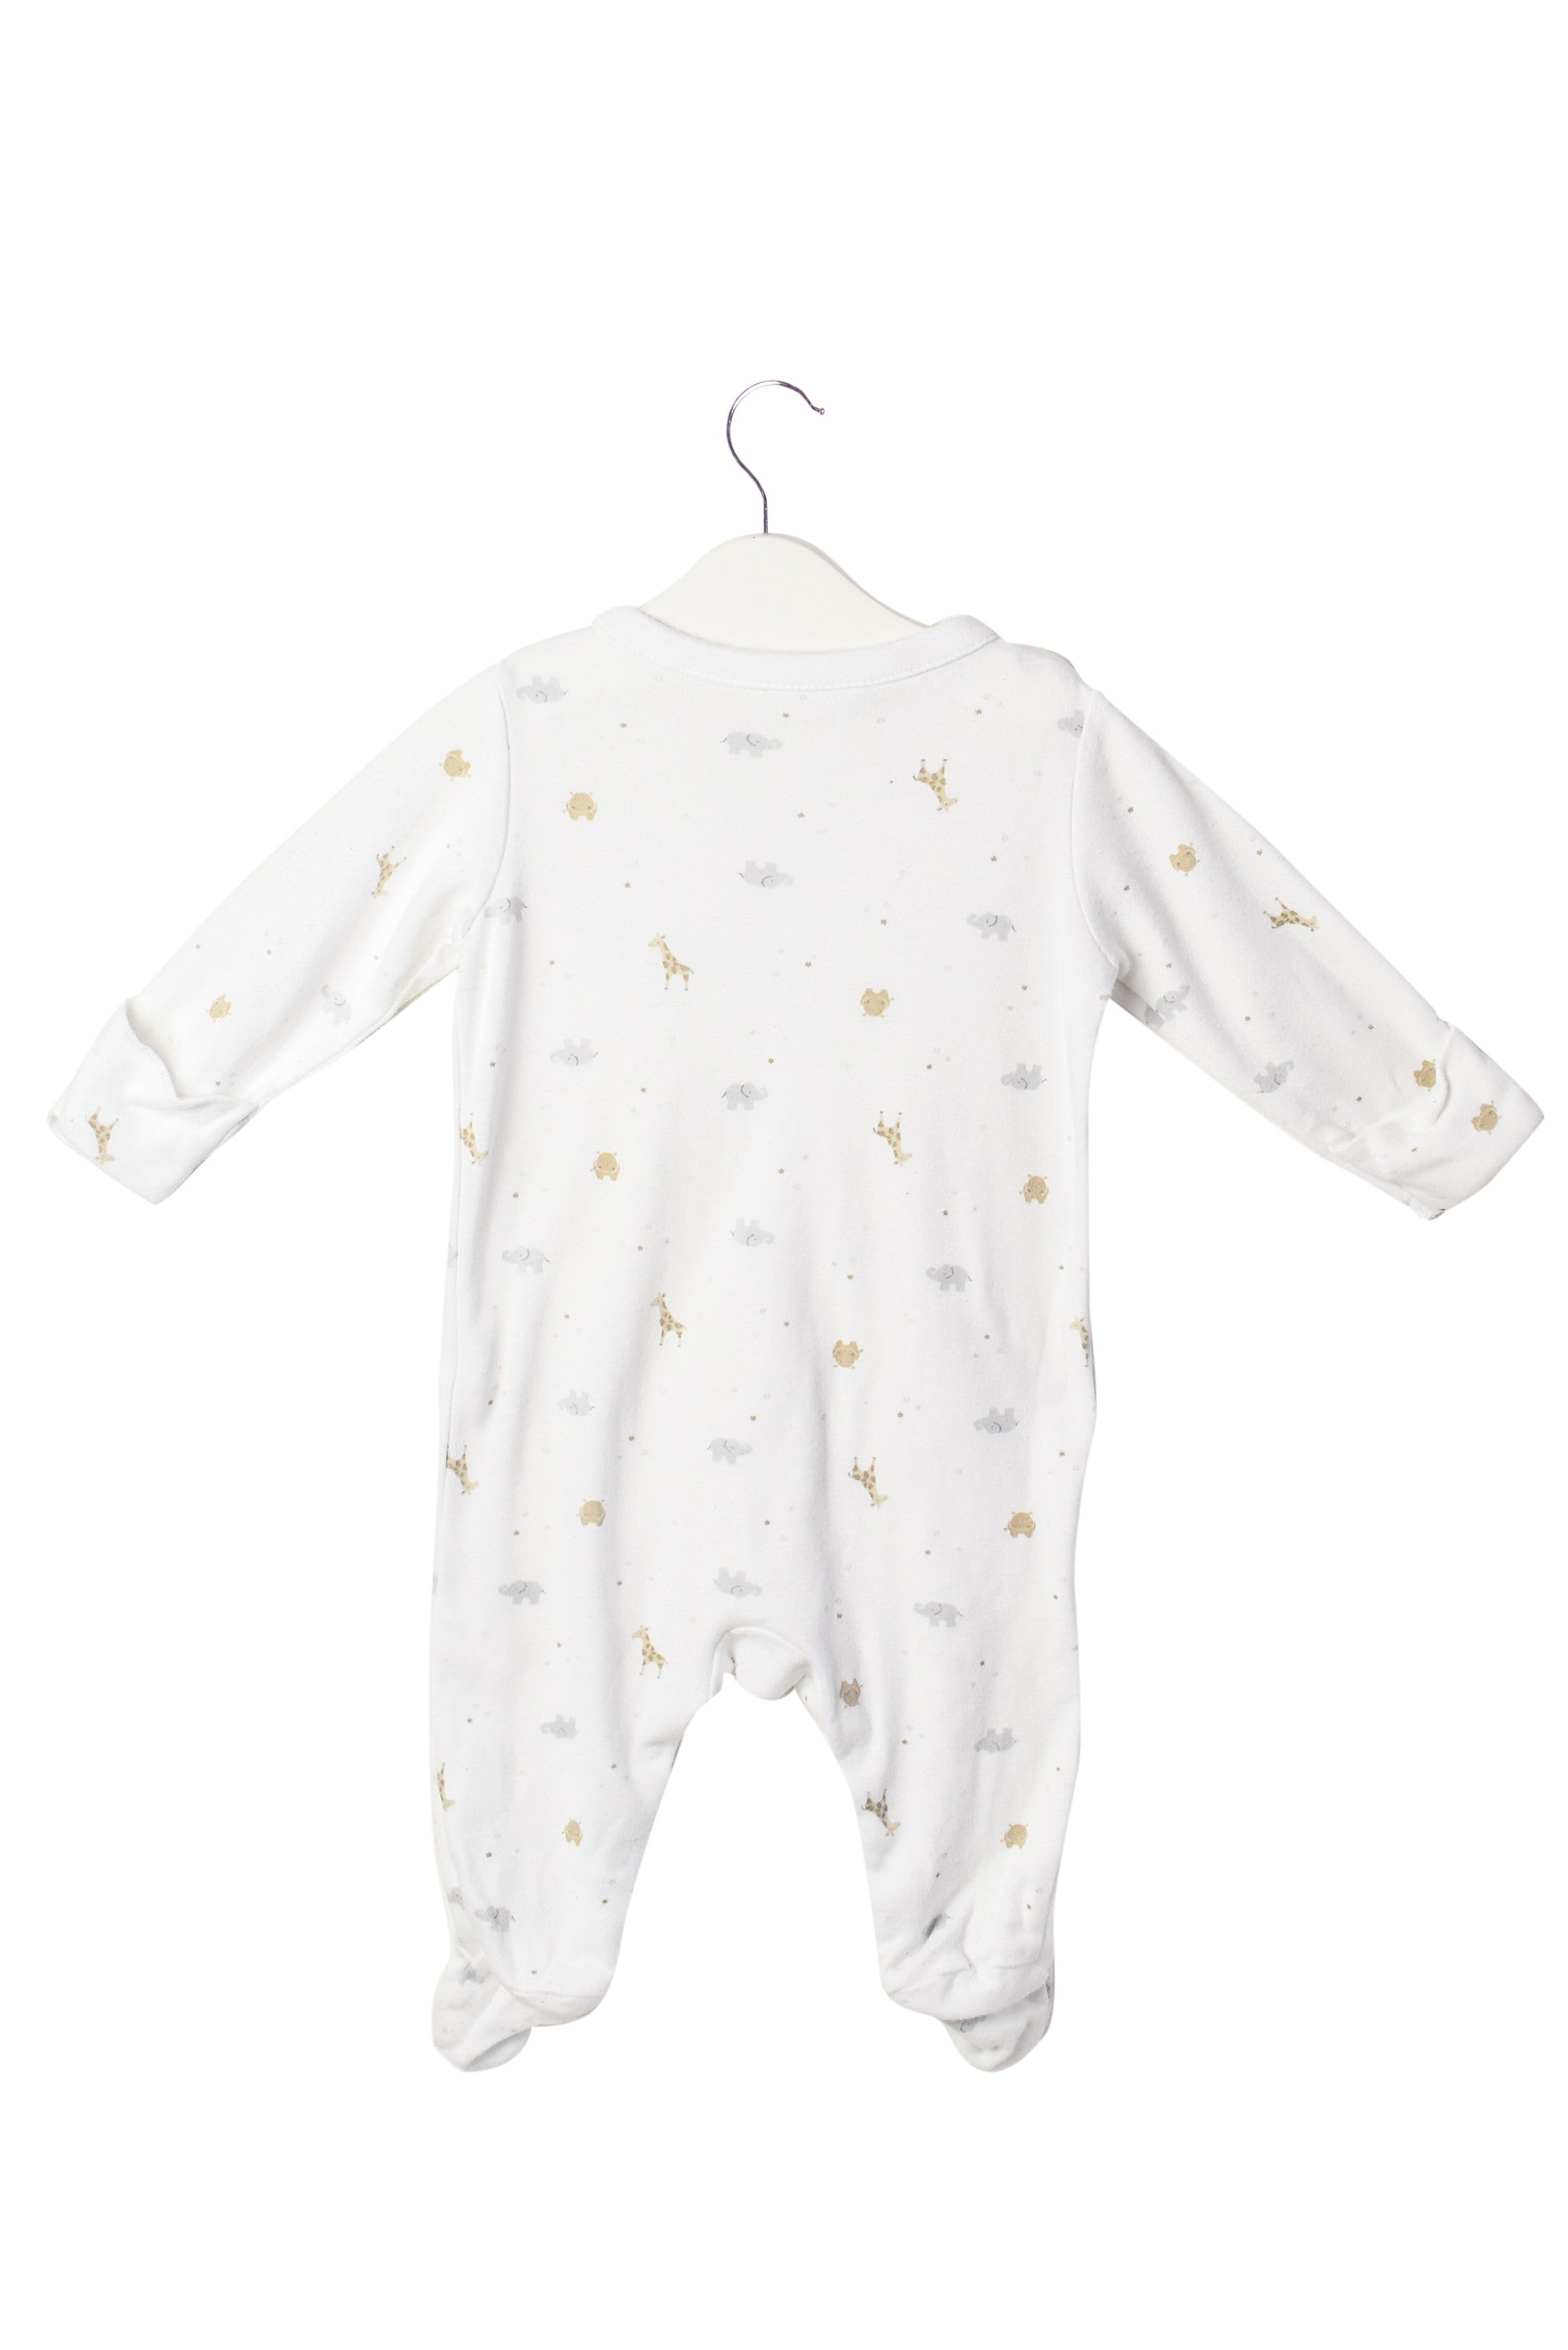 10004848 The Little White Company Baby~Jumpsuit 3-6M, The Little White Company Retykle | Online Baby & Kids Clothing Hong Kong